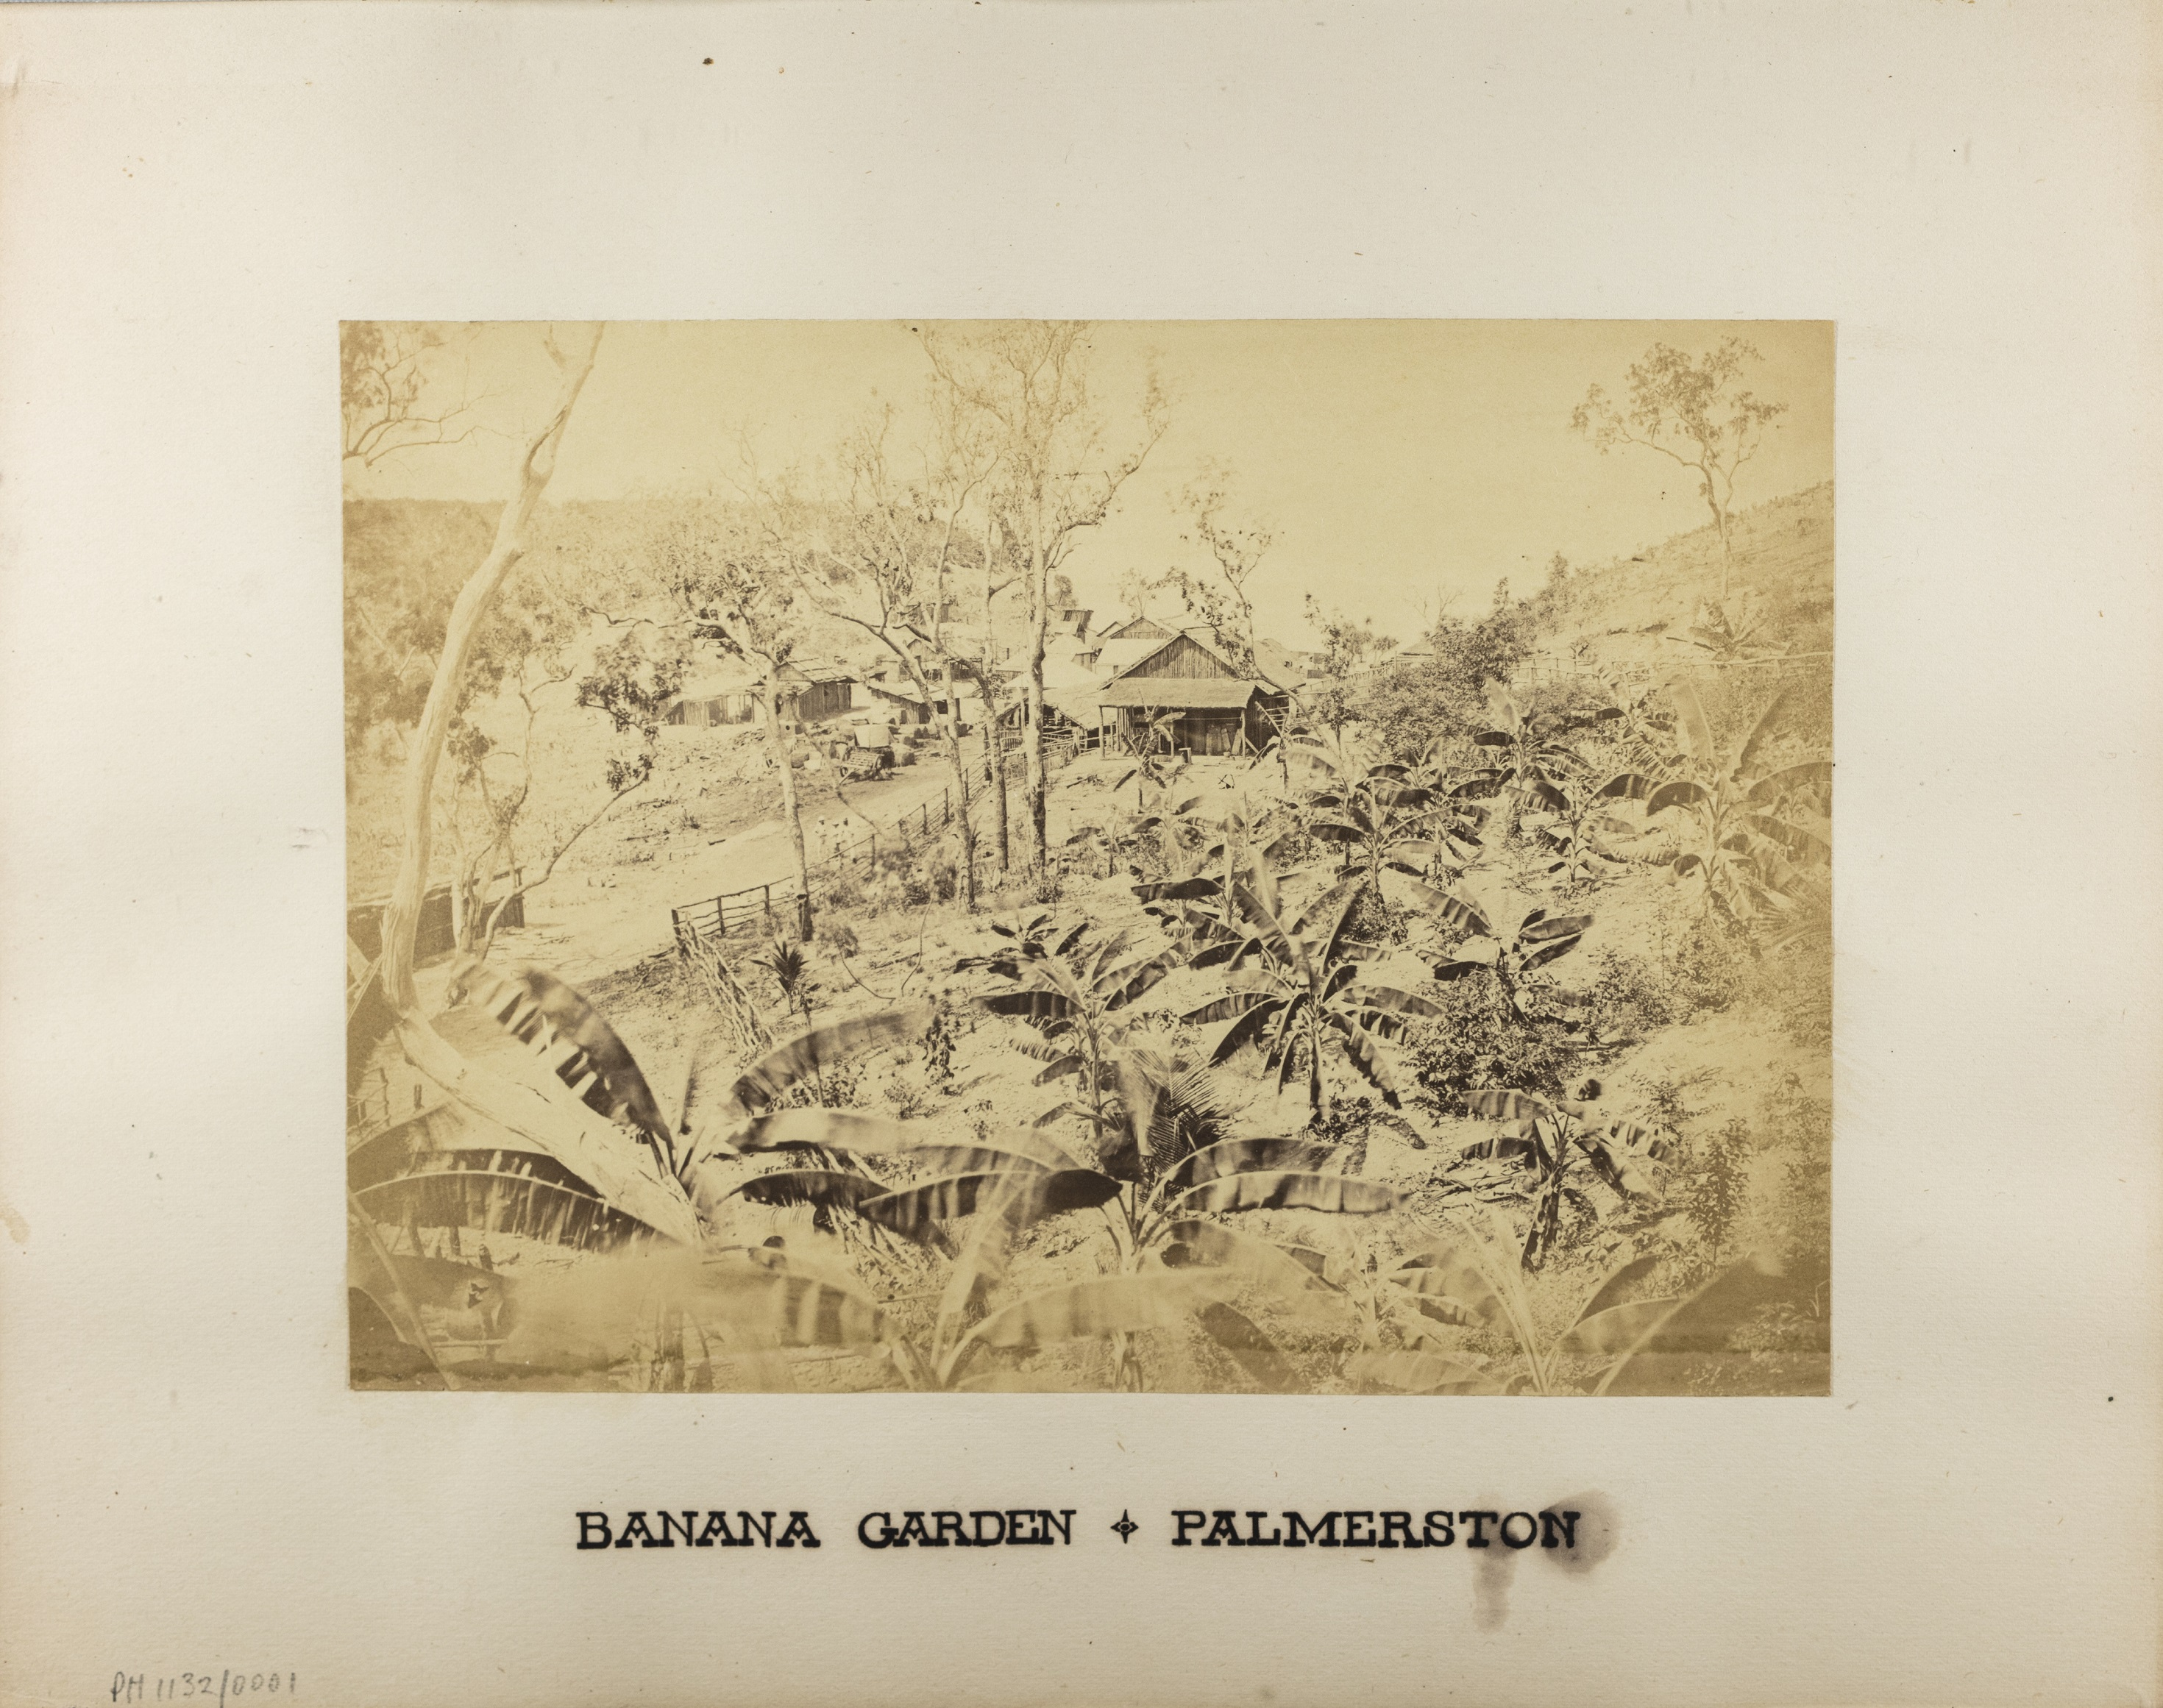 Framed image of Banana garden beside road leading down to main survey camp at the base of Fort Hill, 1869